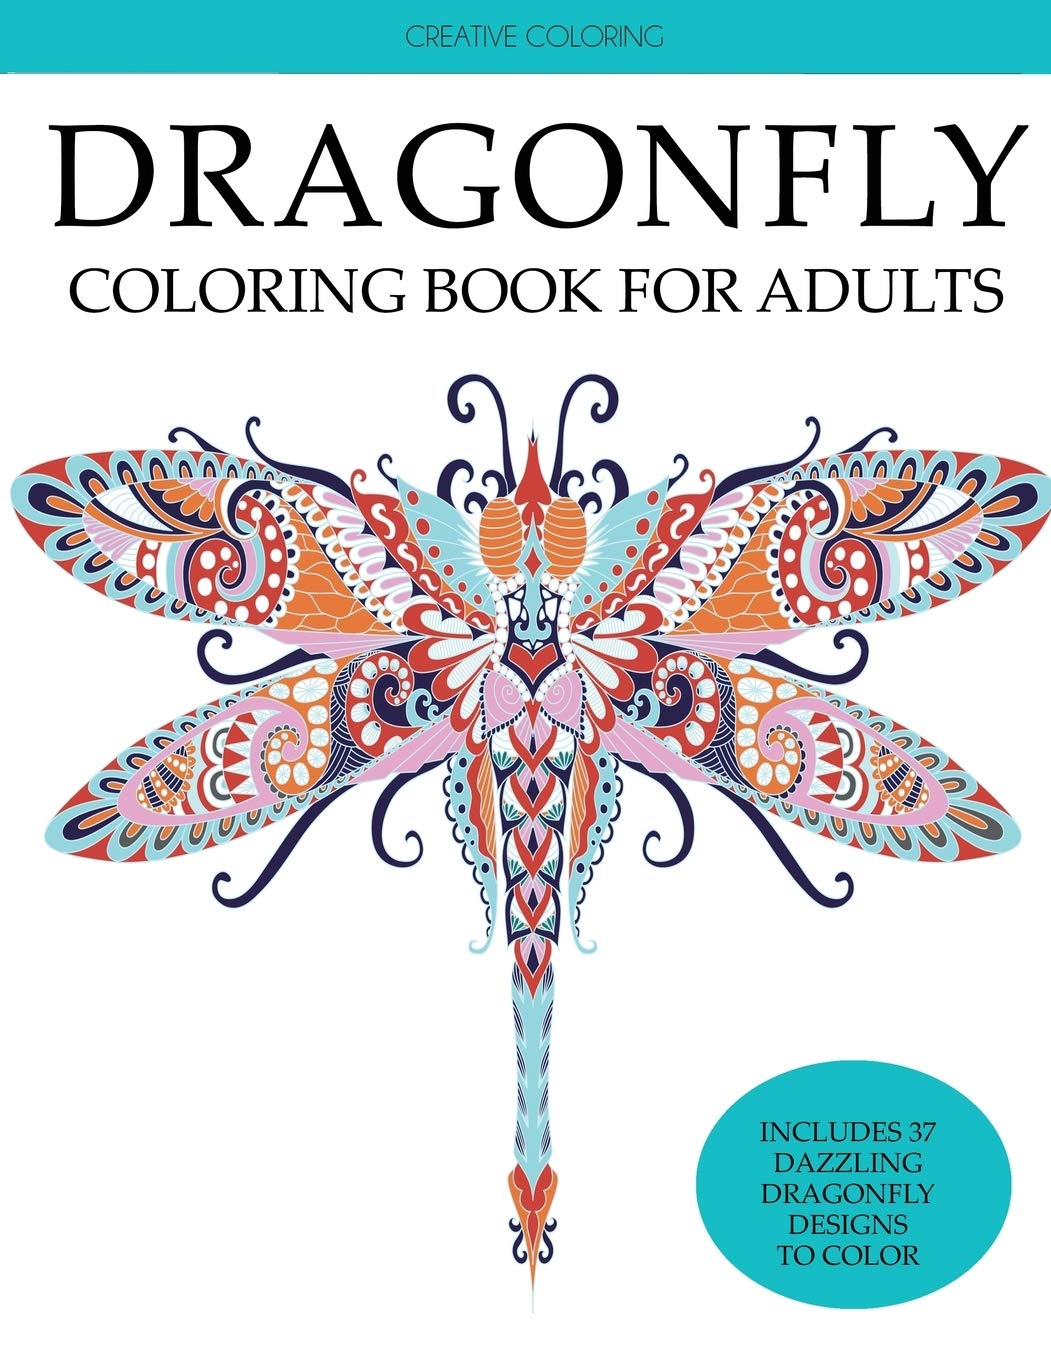 Dragonfly Coloring Book Adults Dragonflies product image